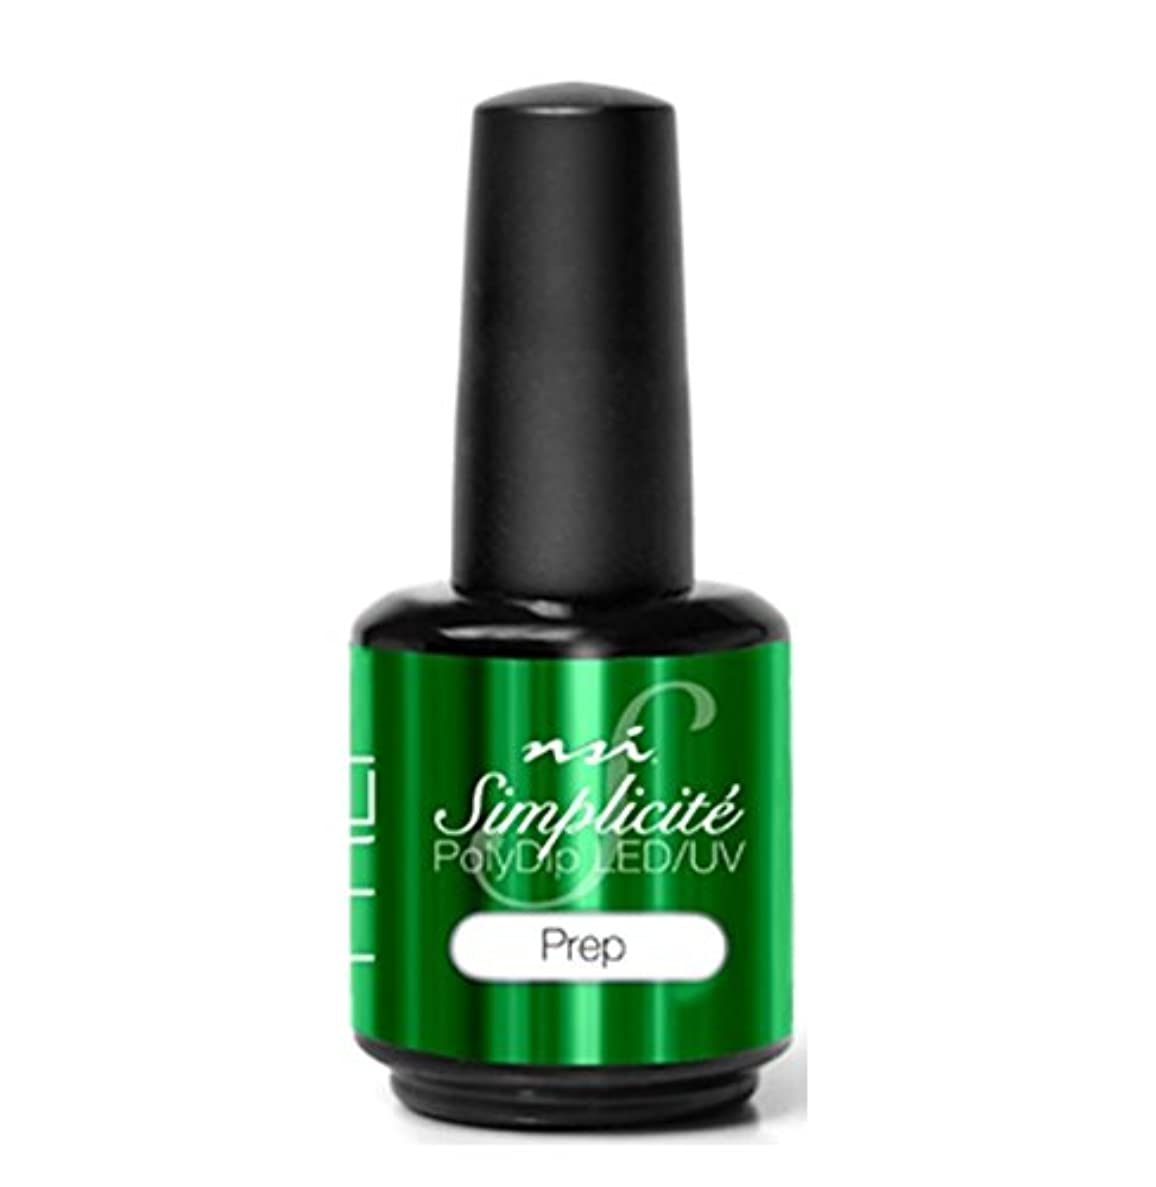 NSI - Simplicité PolyDip LED/UV Polish - Prep - 15 ml/0.5 oz